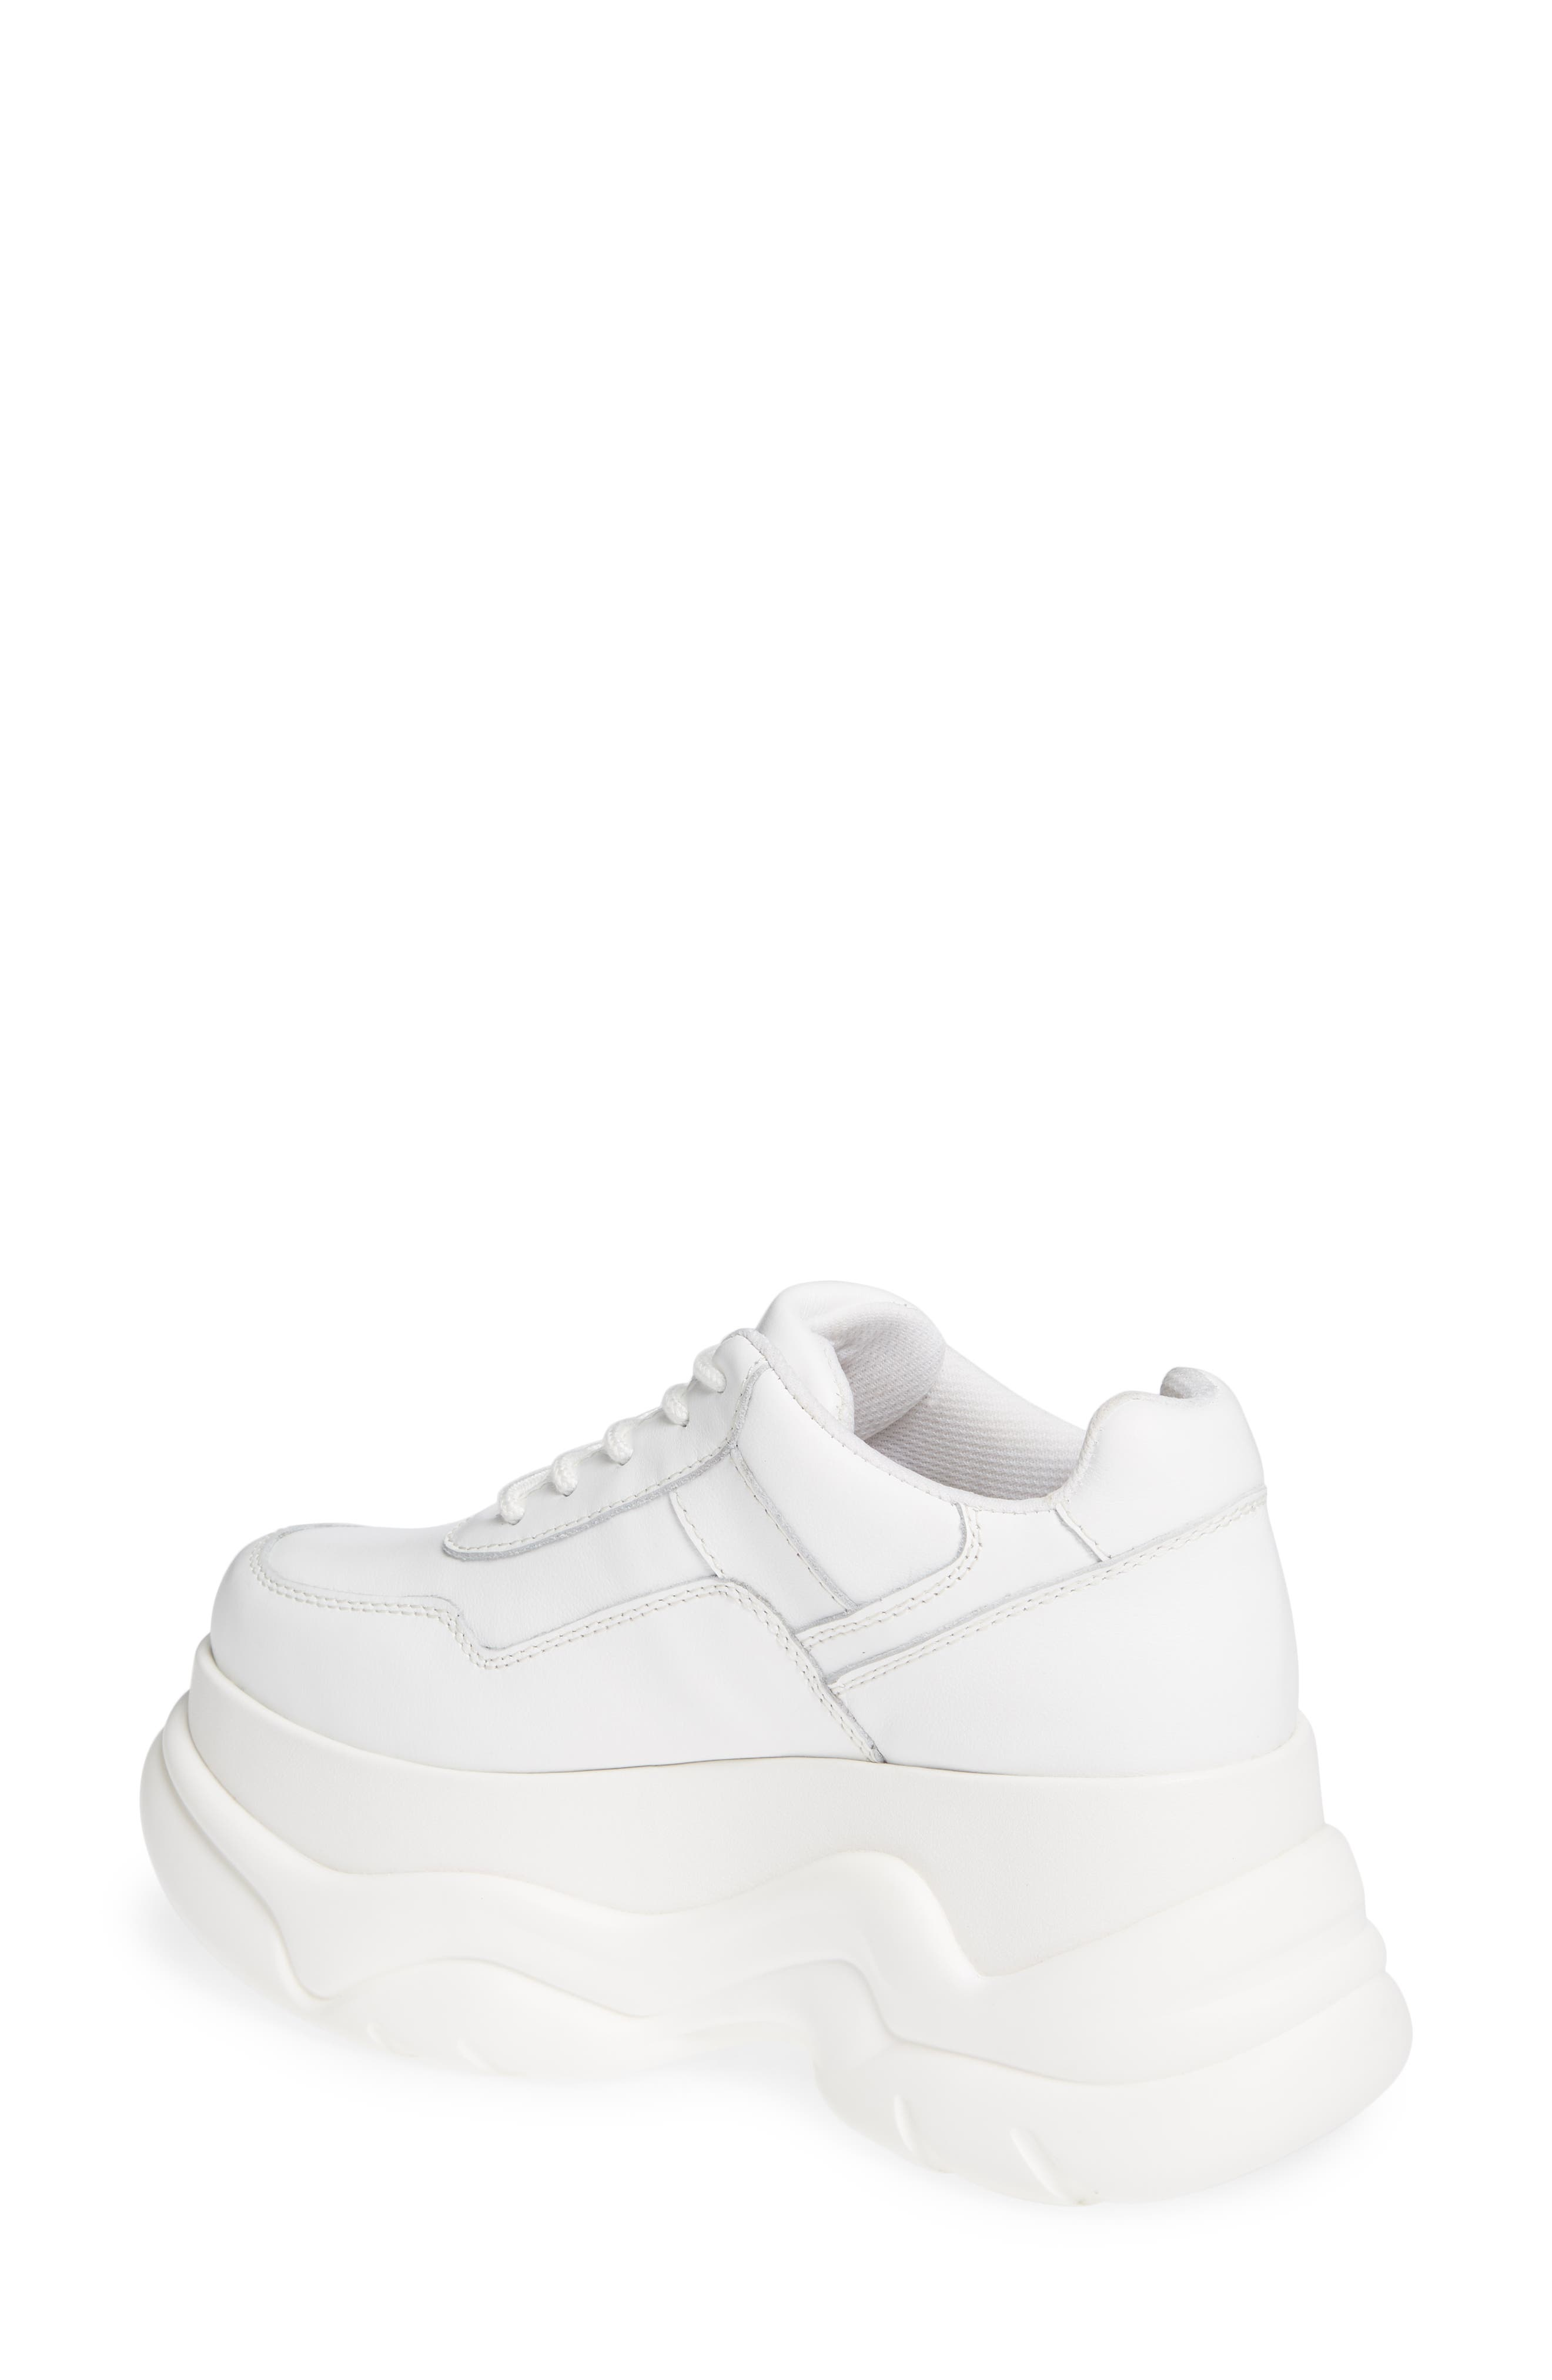 JEFFREY CAMPBELL, Most Def Wedge Sneaker, Alternate thumbnail 2, color, WHITE/ WHITE LEATHER